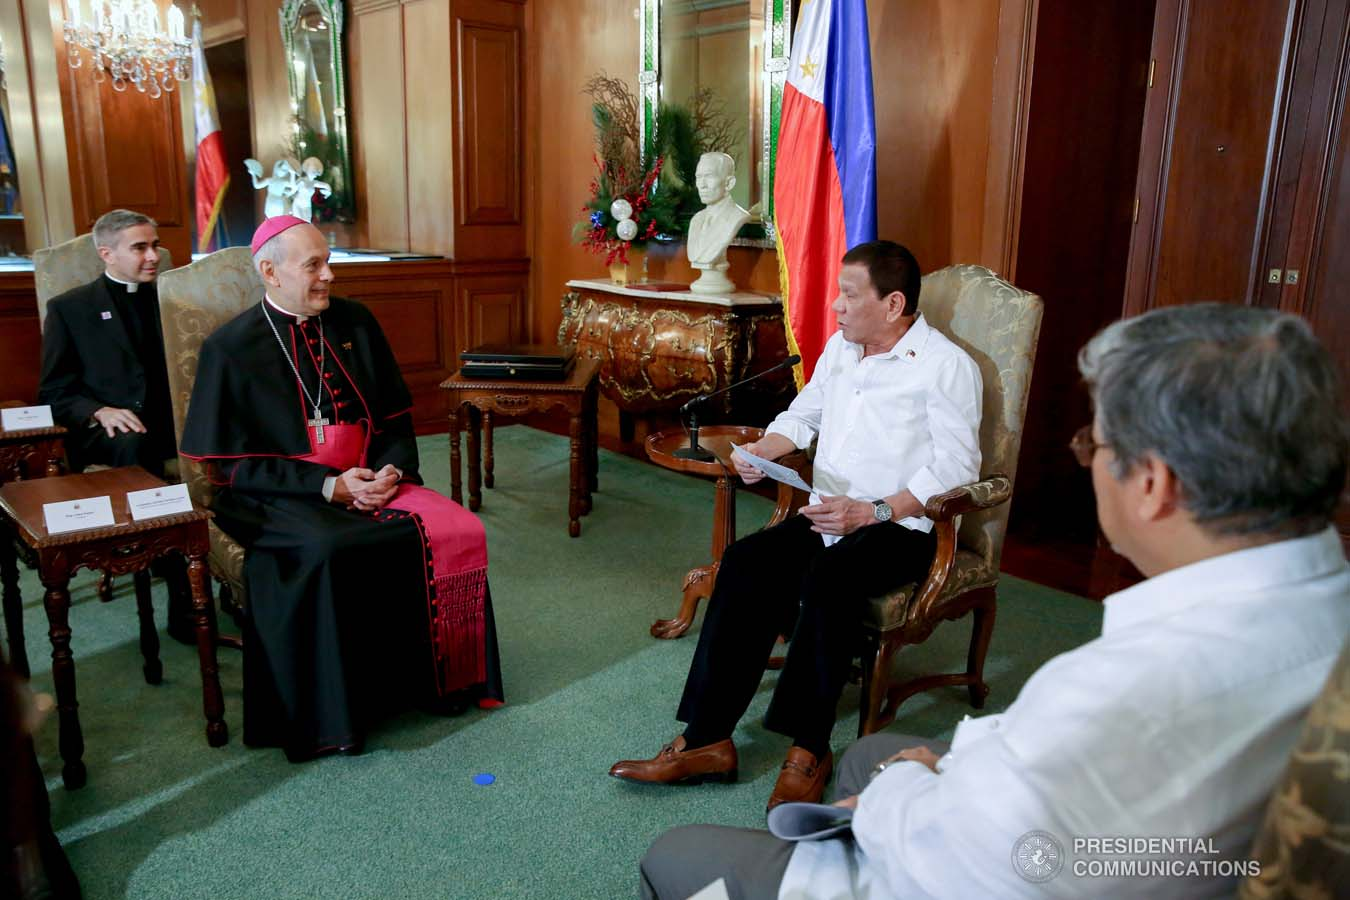 President Rodrigo Roa Duterte discusses matters with outgoing Apostolic Nuncio of the Holy See to the Philippines Archbishop Gabriele Caccia, who paid a farewell call to the President at the Malacañan Palace on December 11, 2019. ROBINSON NIÑAL JR./PRESIDENTIAL PHOT